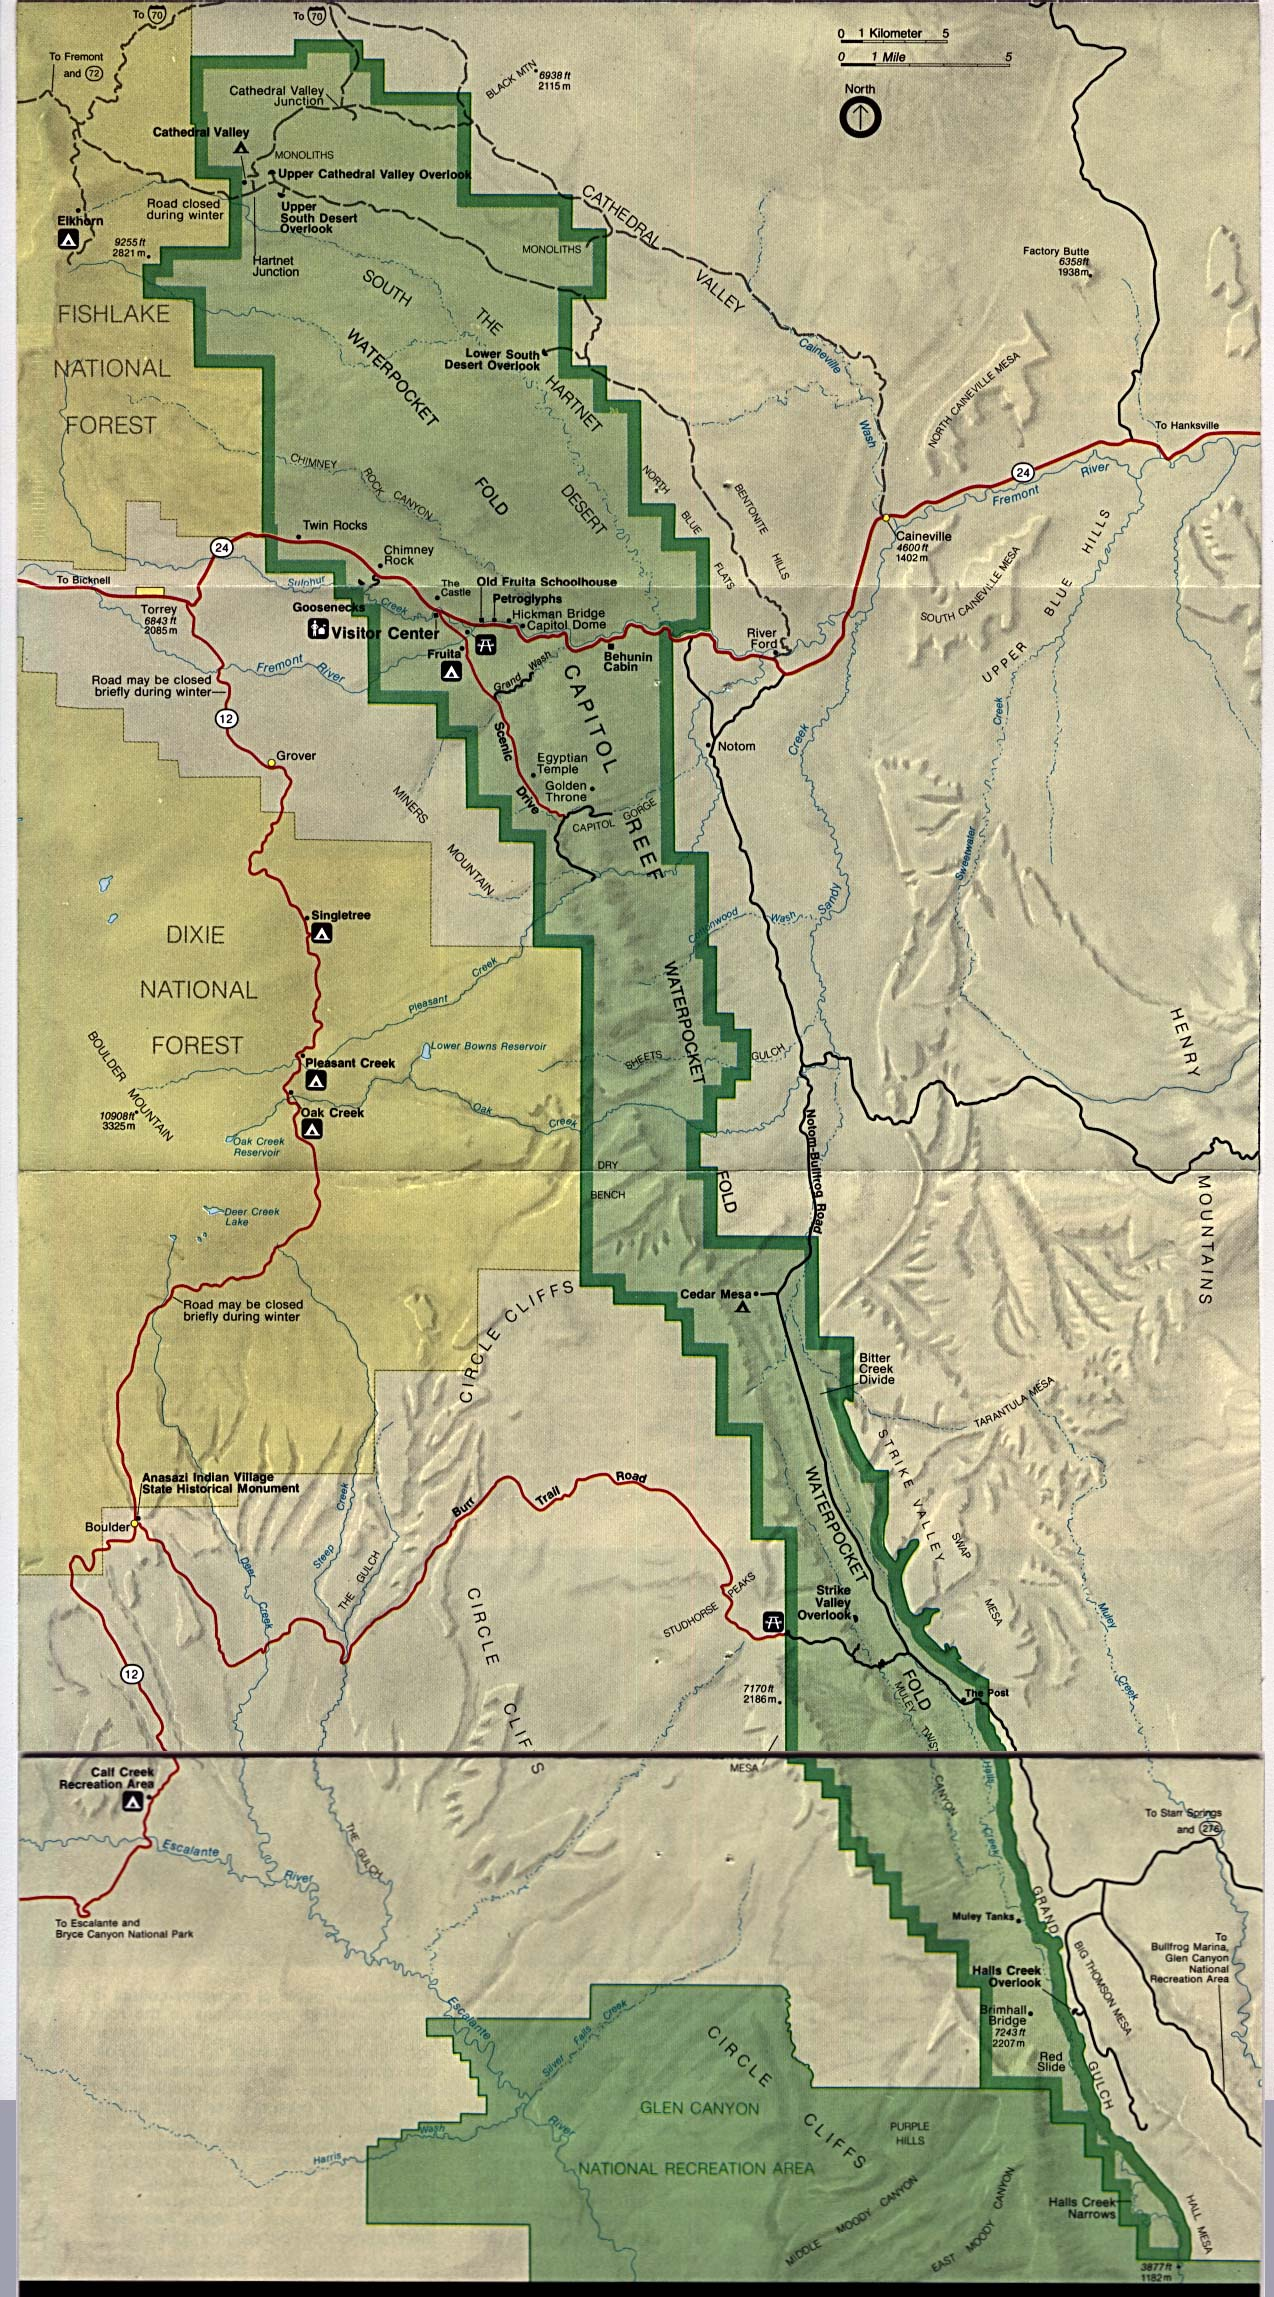 Capitol Reef National Park Map, Utah, United States